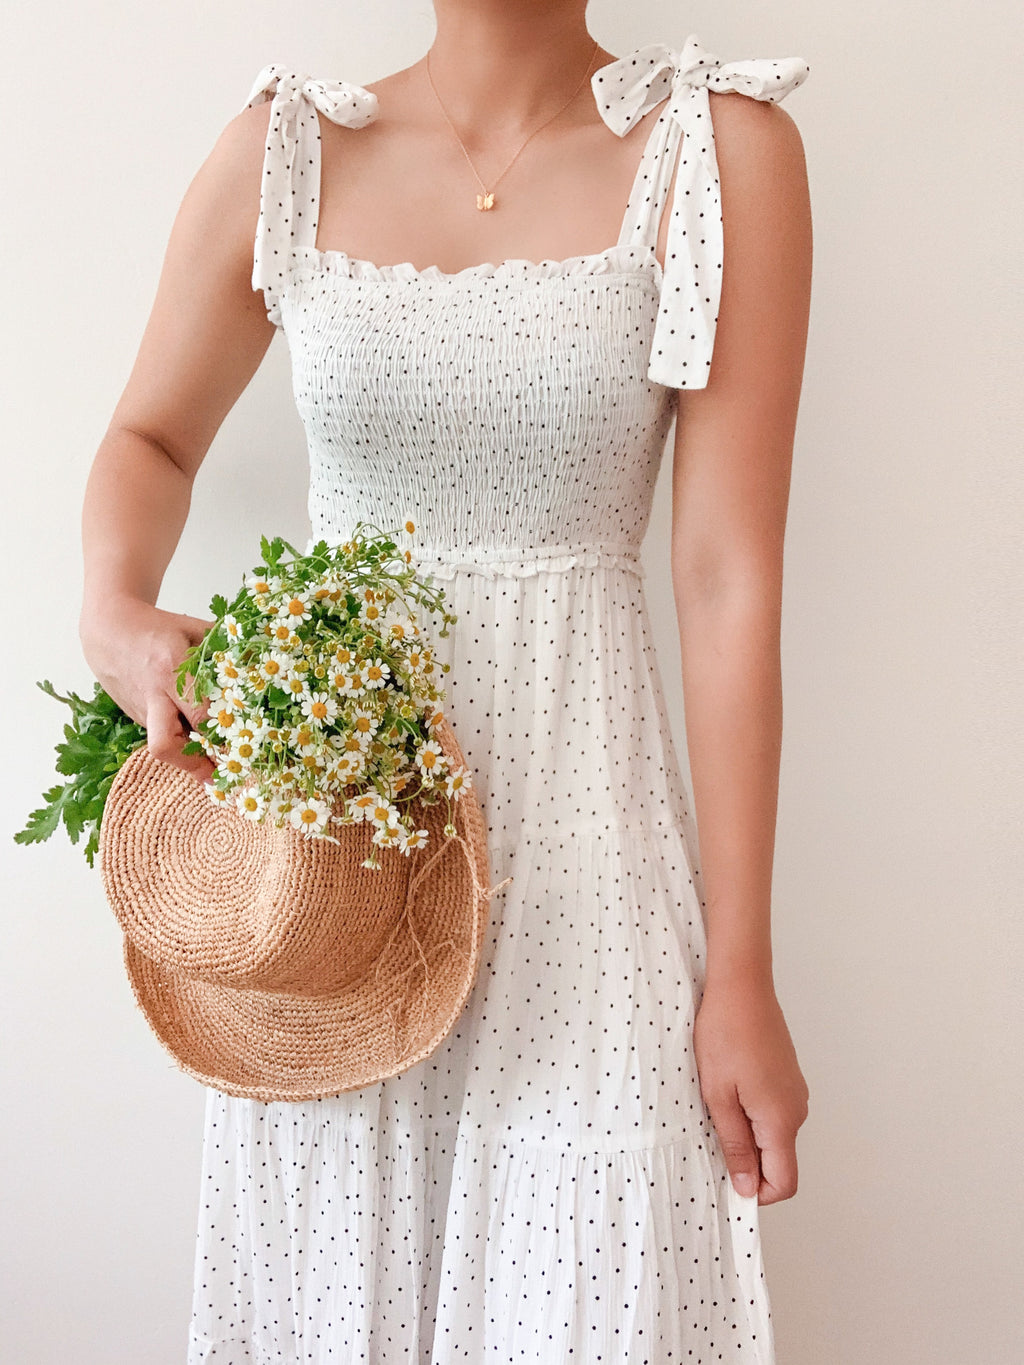 Find it in the sunshine dress